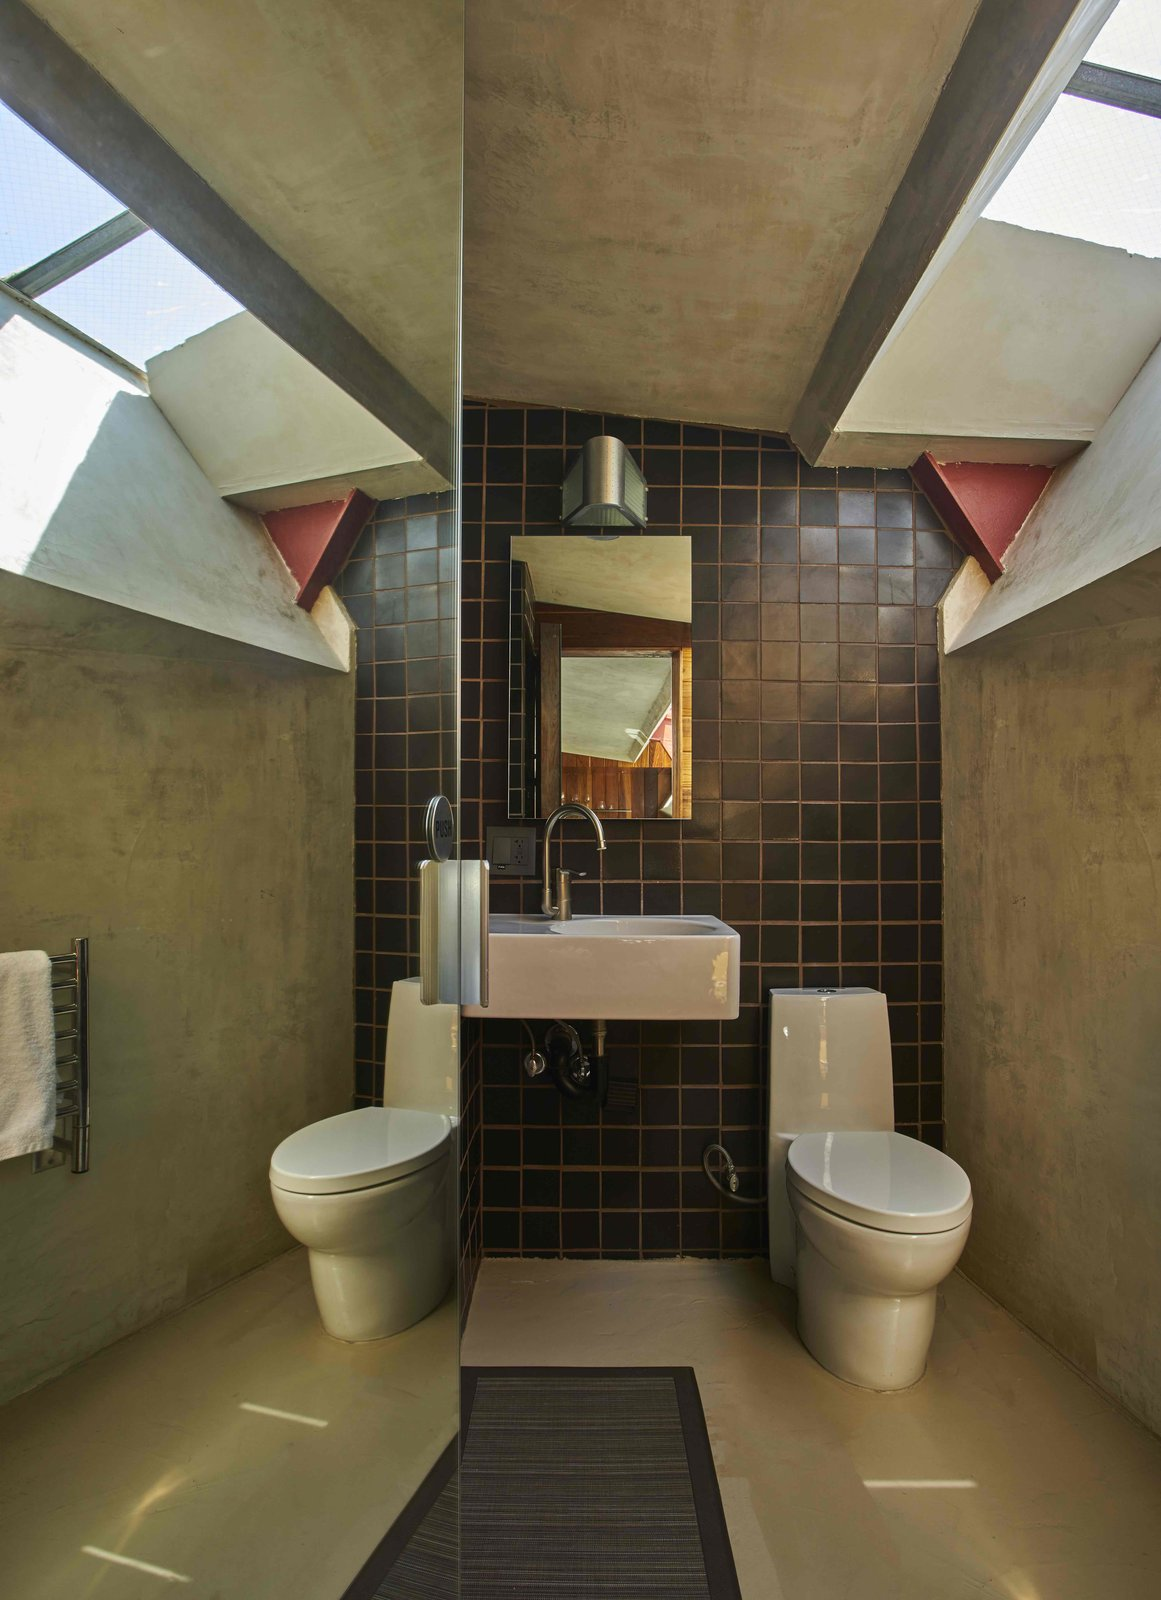 Tagged: Bath Room, Ceramic Tile Wall, Ceramic Tile Floor, Wall Lighting, Wall Mount Sink, and Two Piece Toilet.  Photo 11 of 13 in Escape to a John Lautner Micro-Resort in the Californian Desert